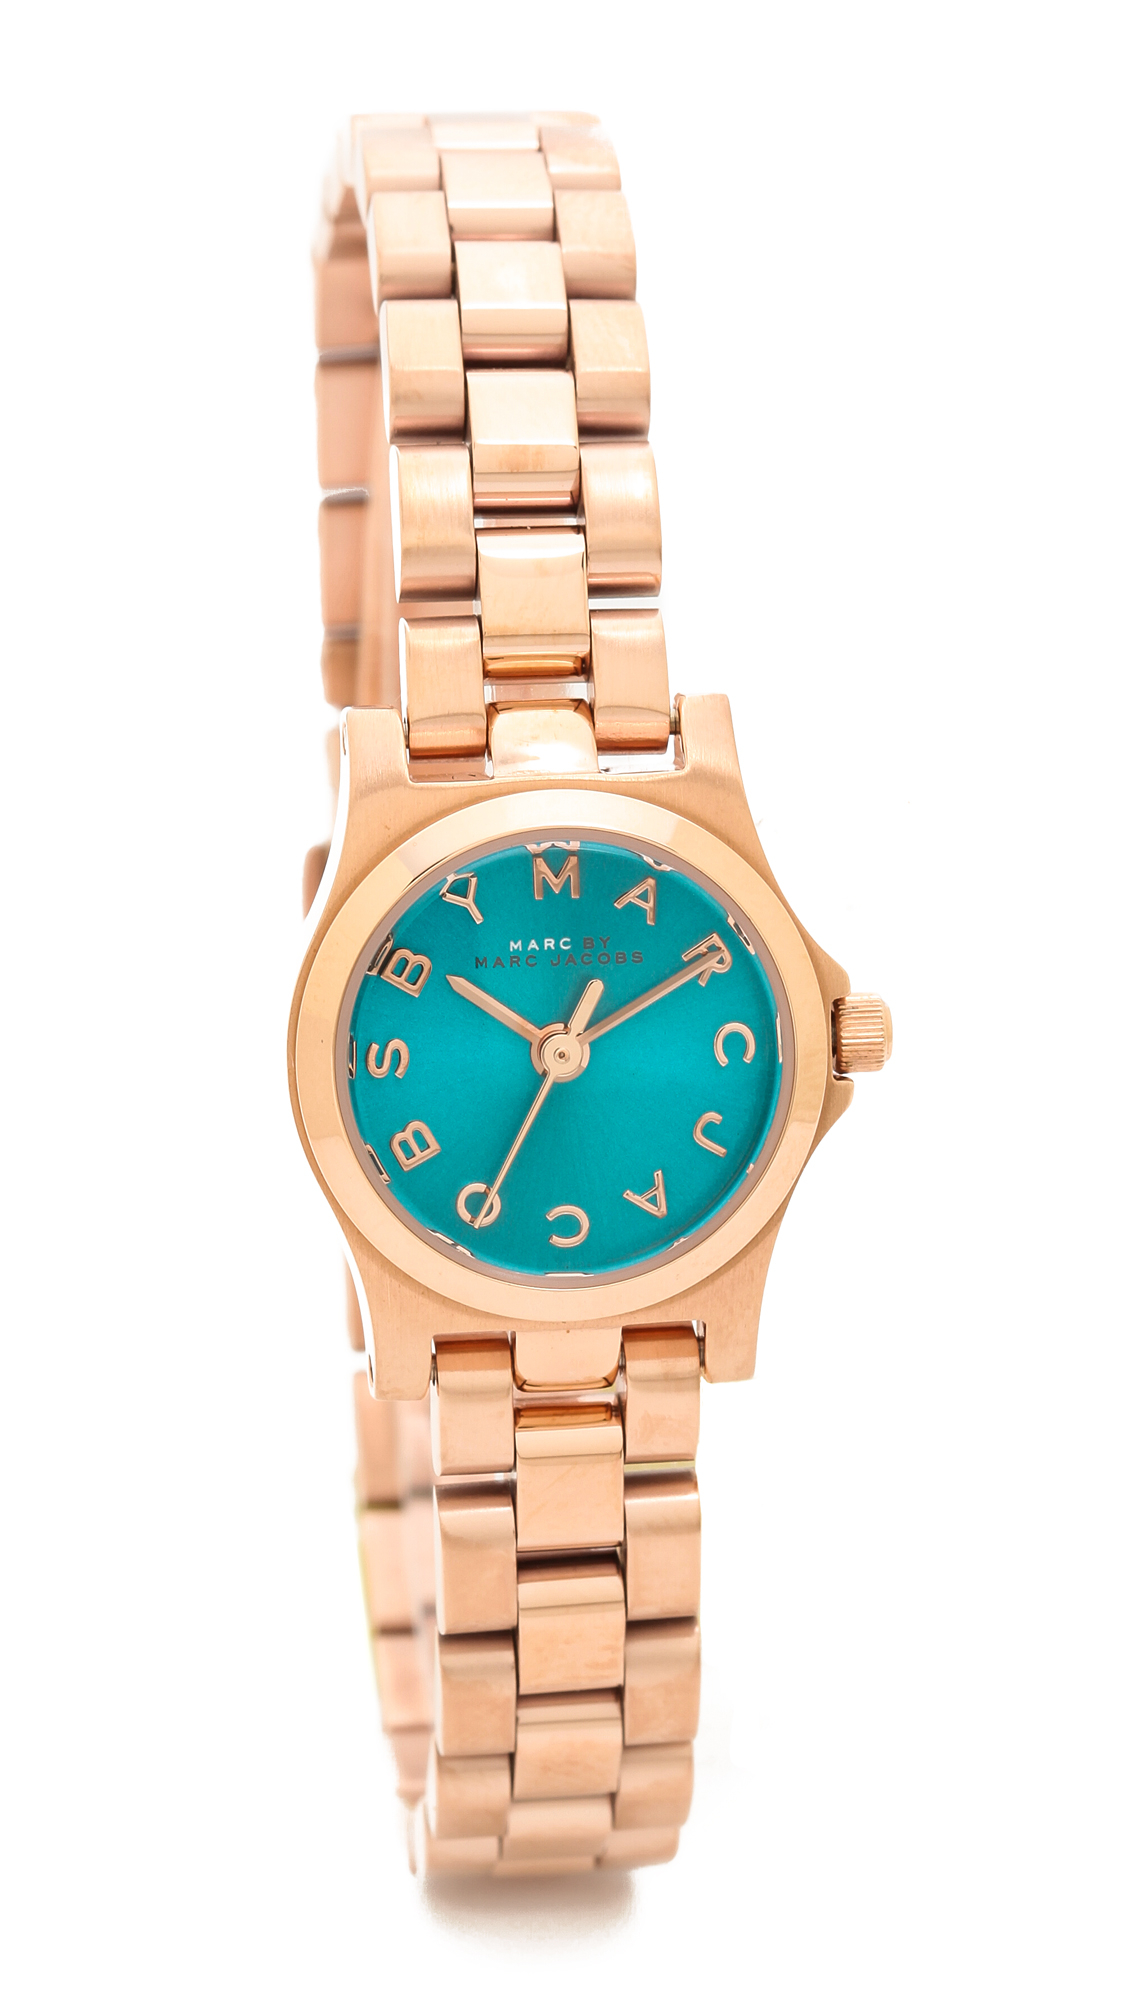 ef5360f61 Gallery. Previously sold at: Shopbop · Women's Marc By Marc Jacobs Henry